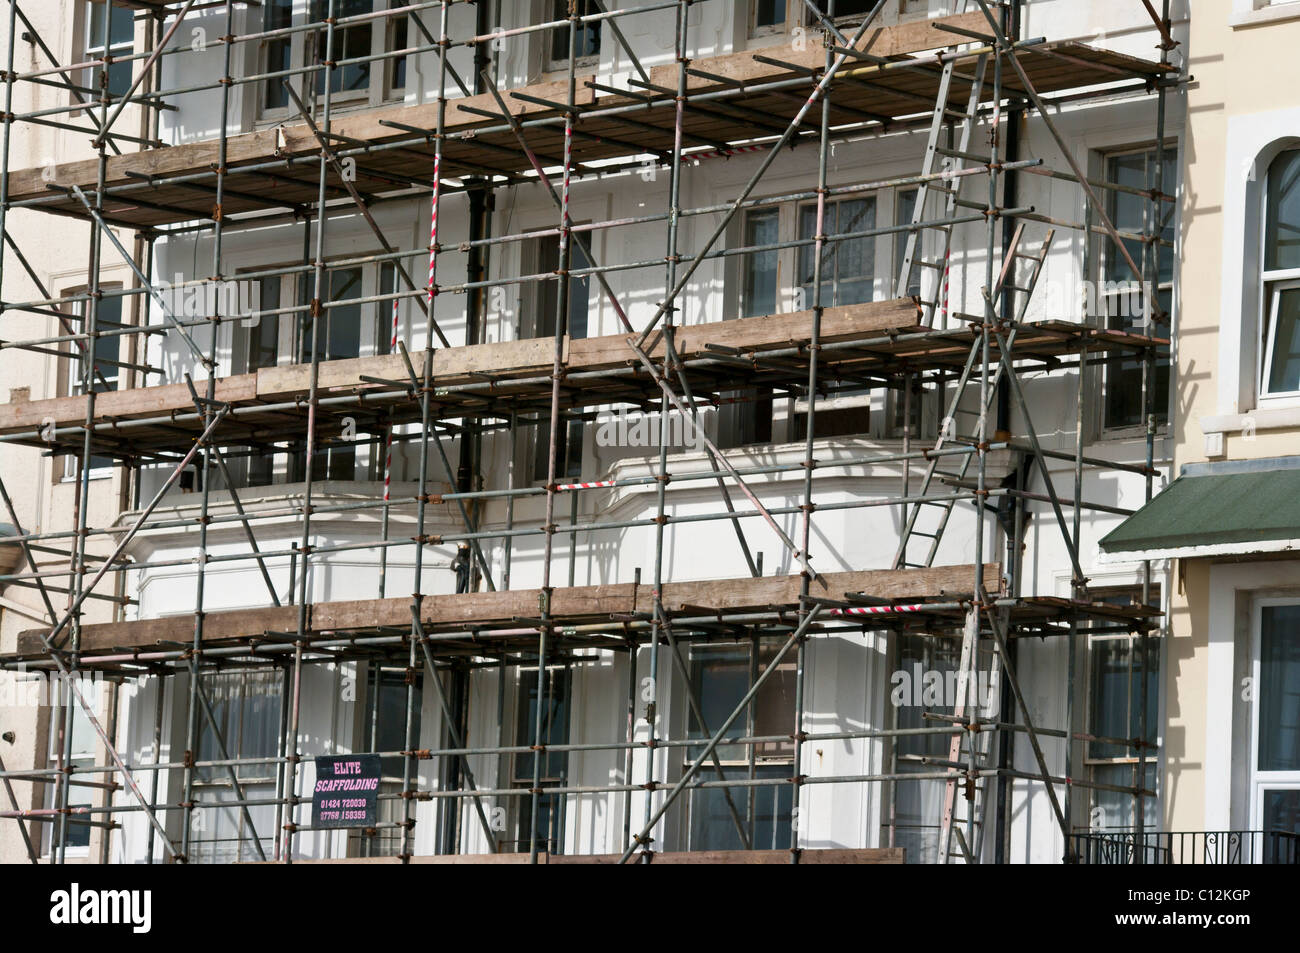 Scaffolding On The Front Of A Building - Stock Image